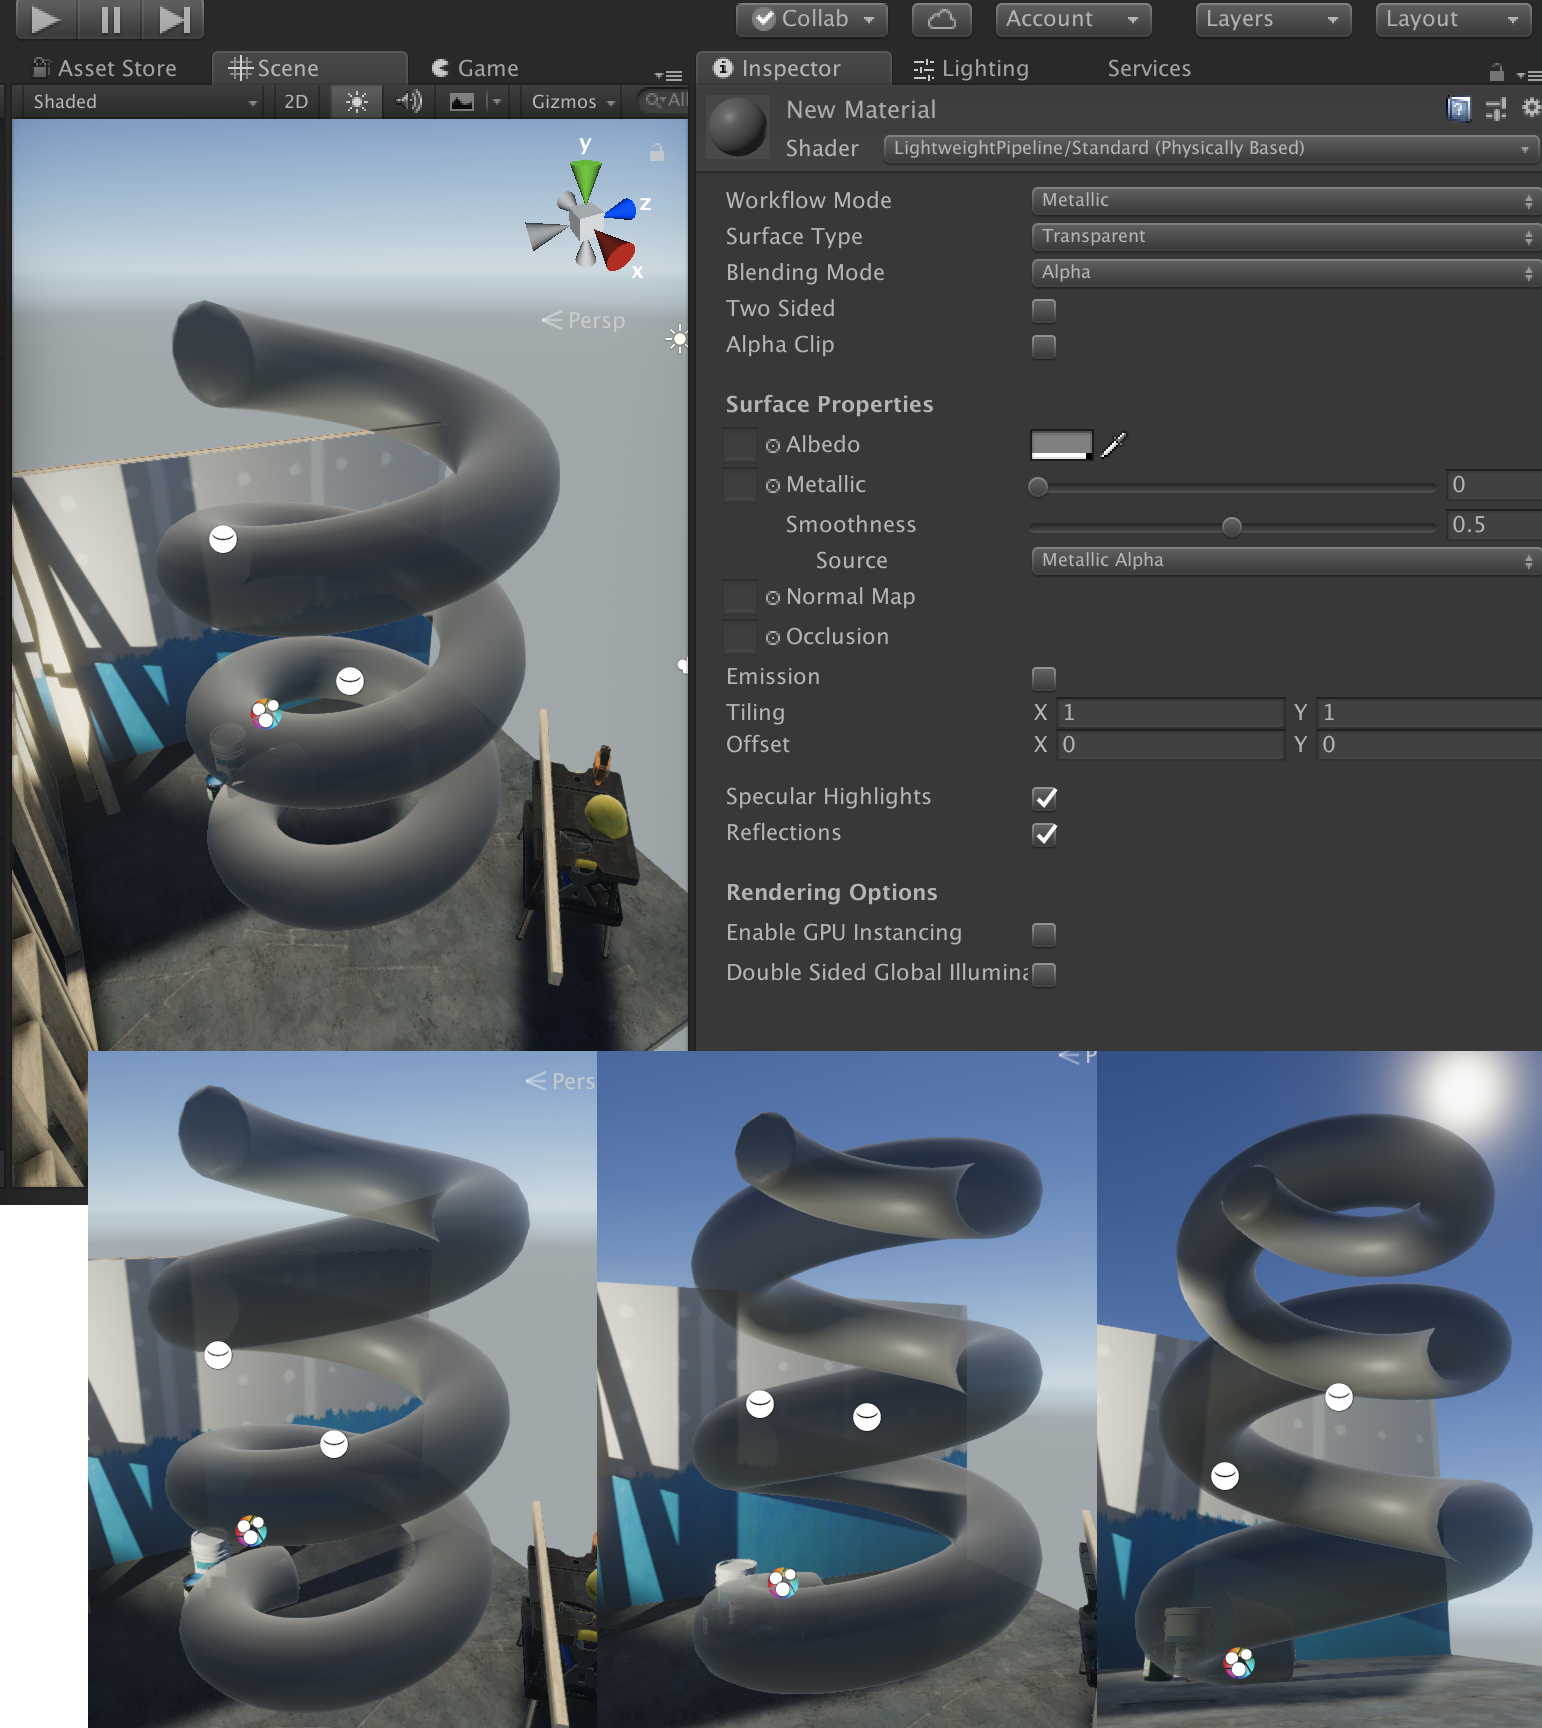 Feedback Wanted: Lightweight Render Pipeline | Page 3